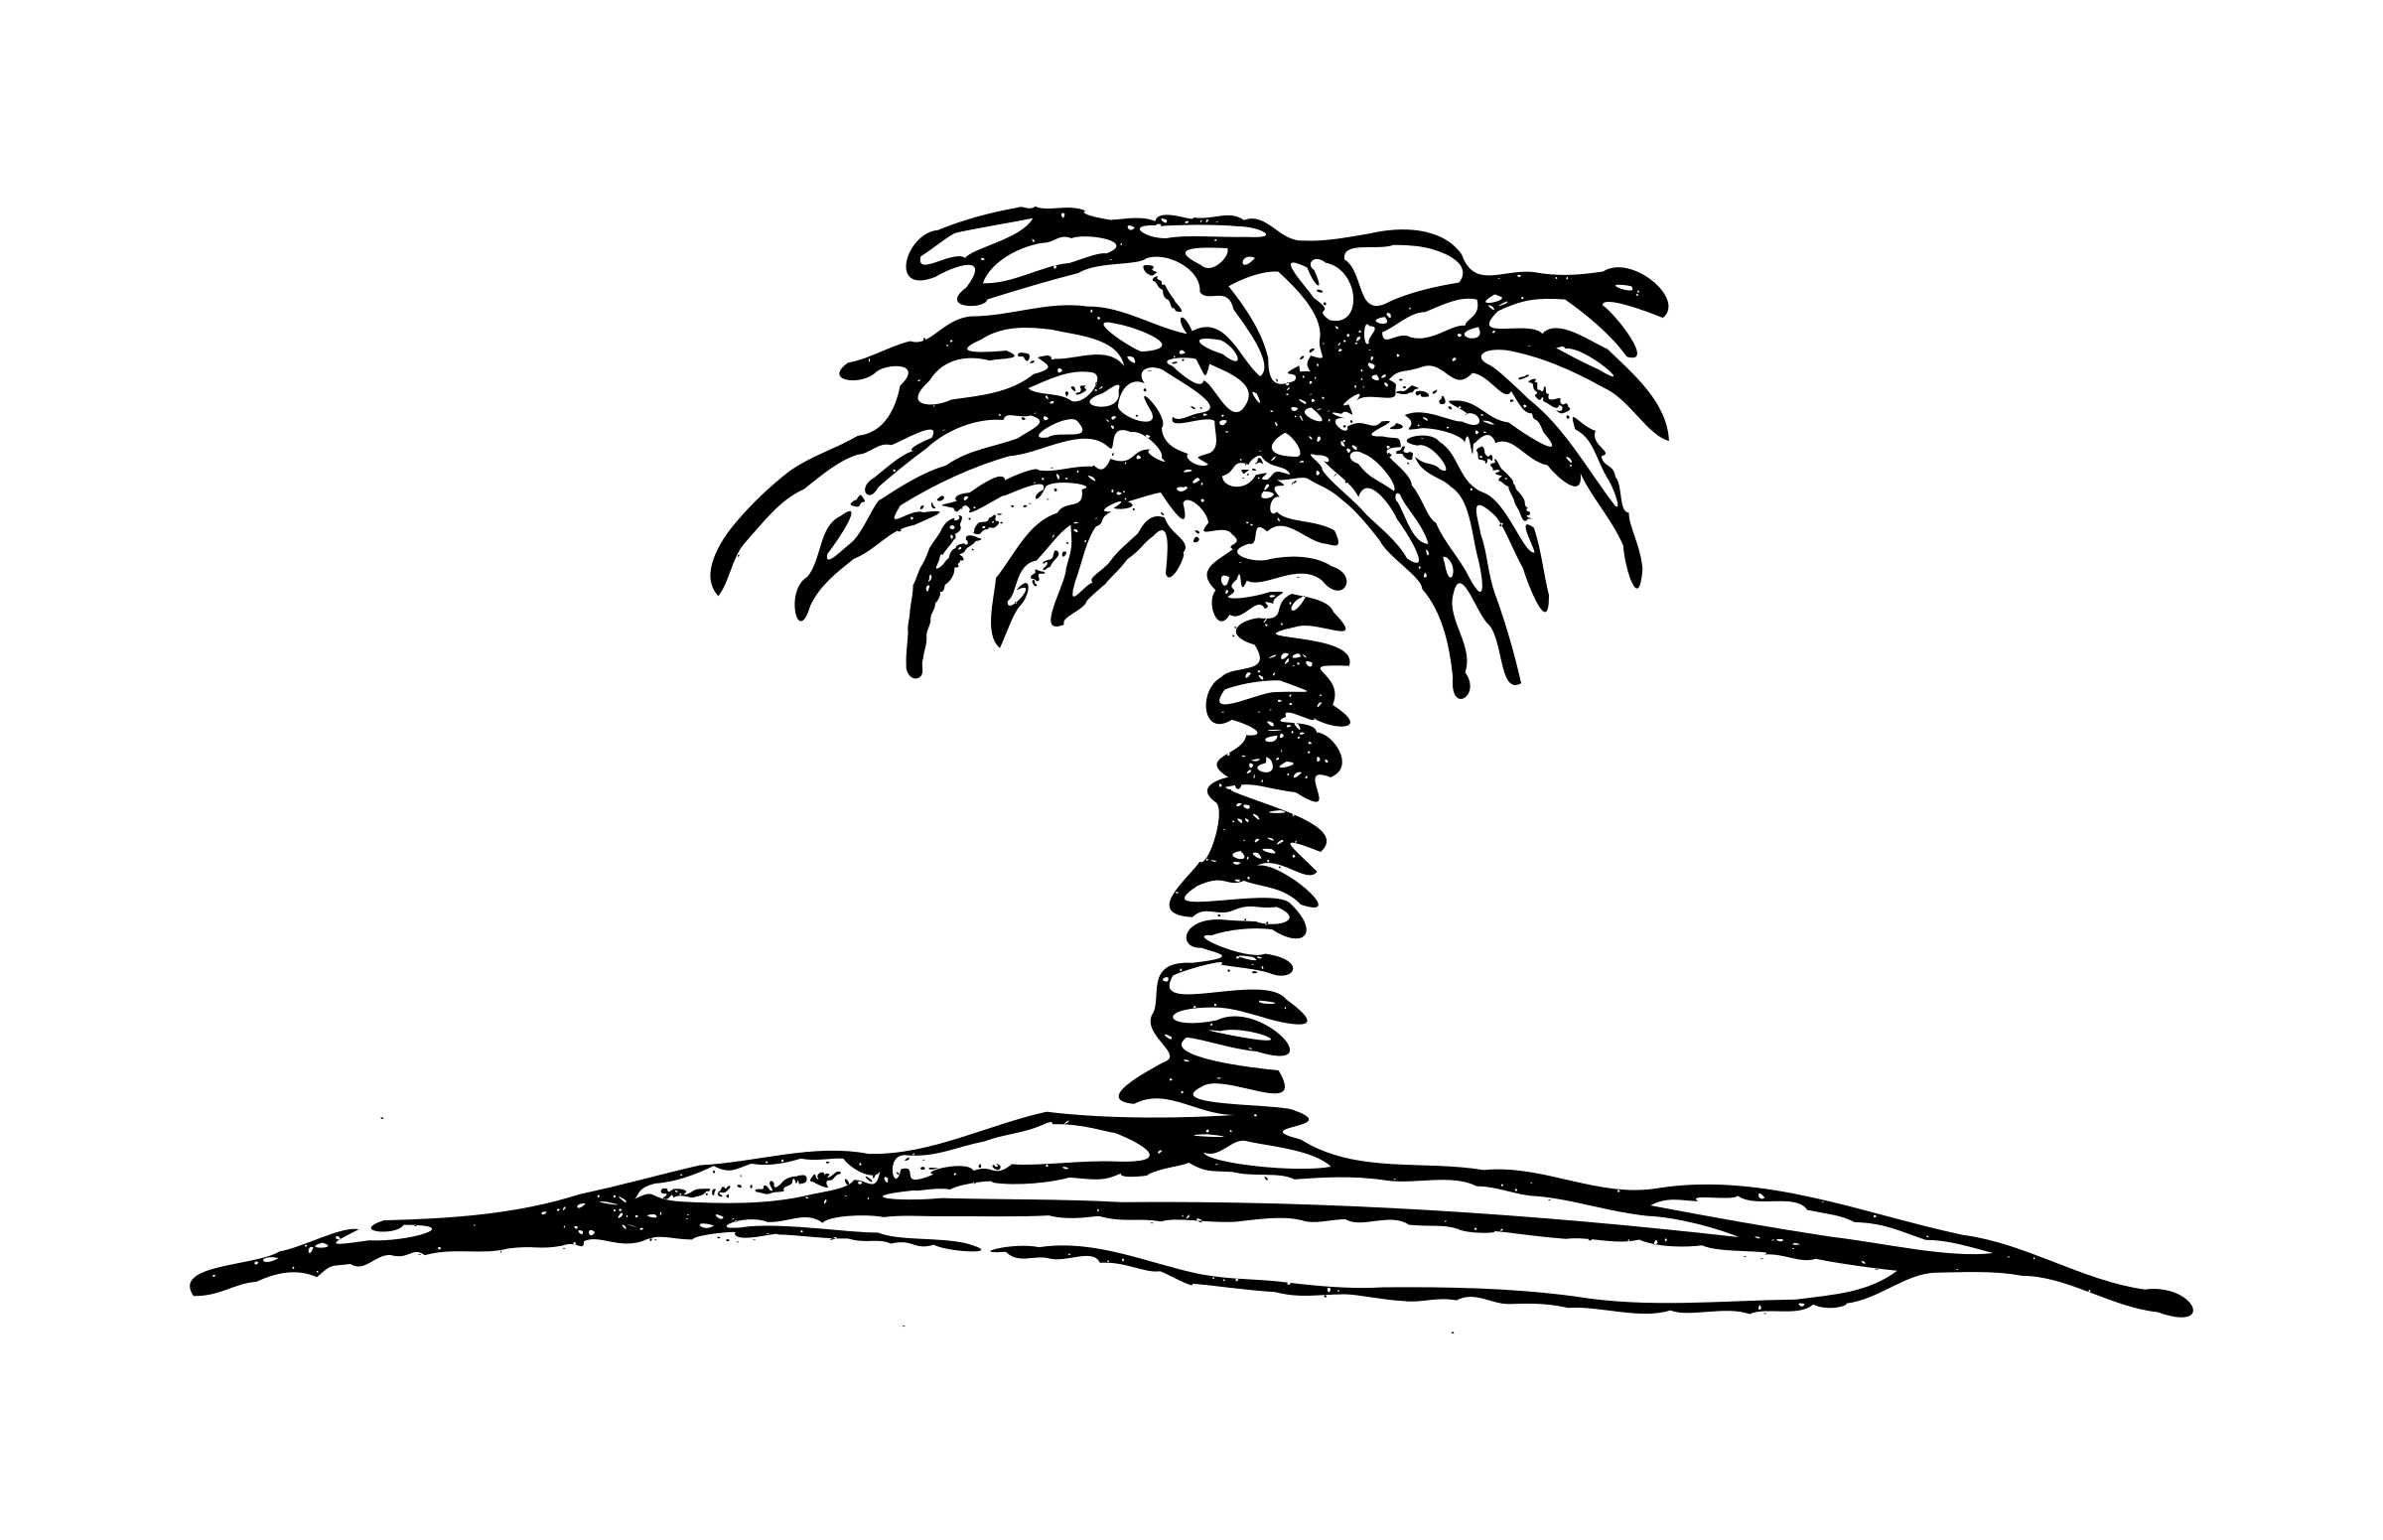 Palm Tree Sketch Vector Clipart Image